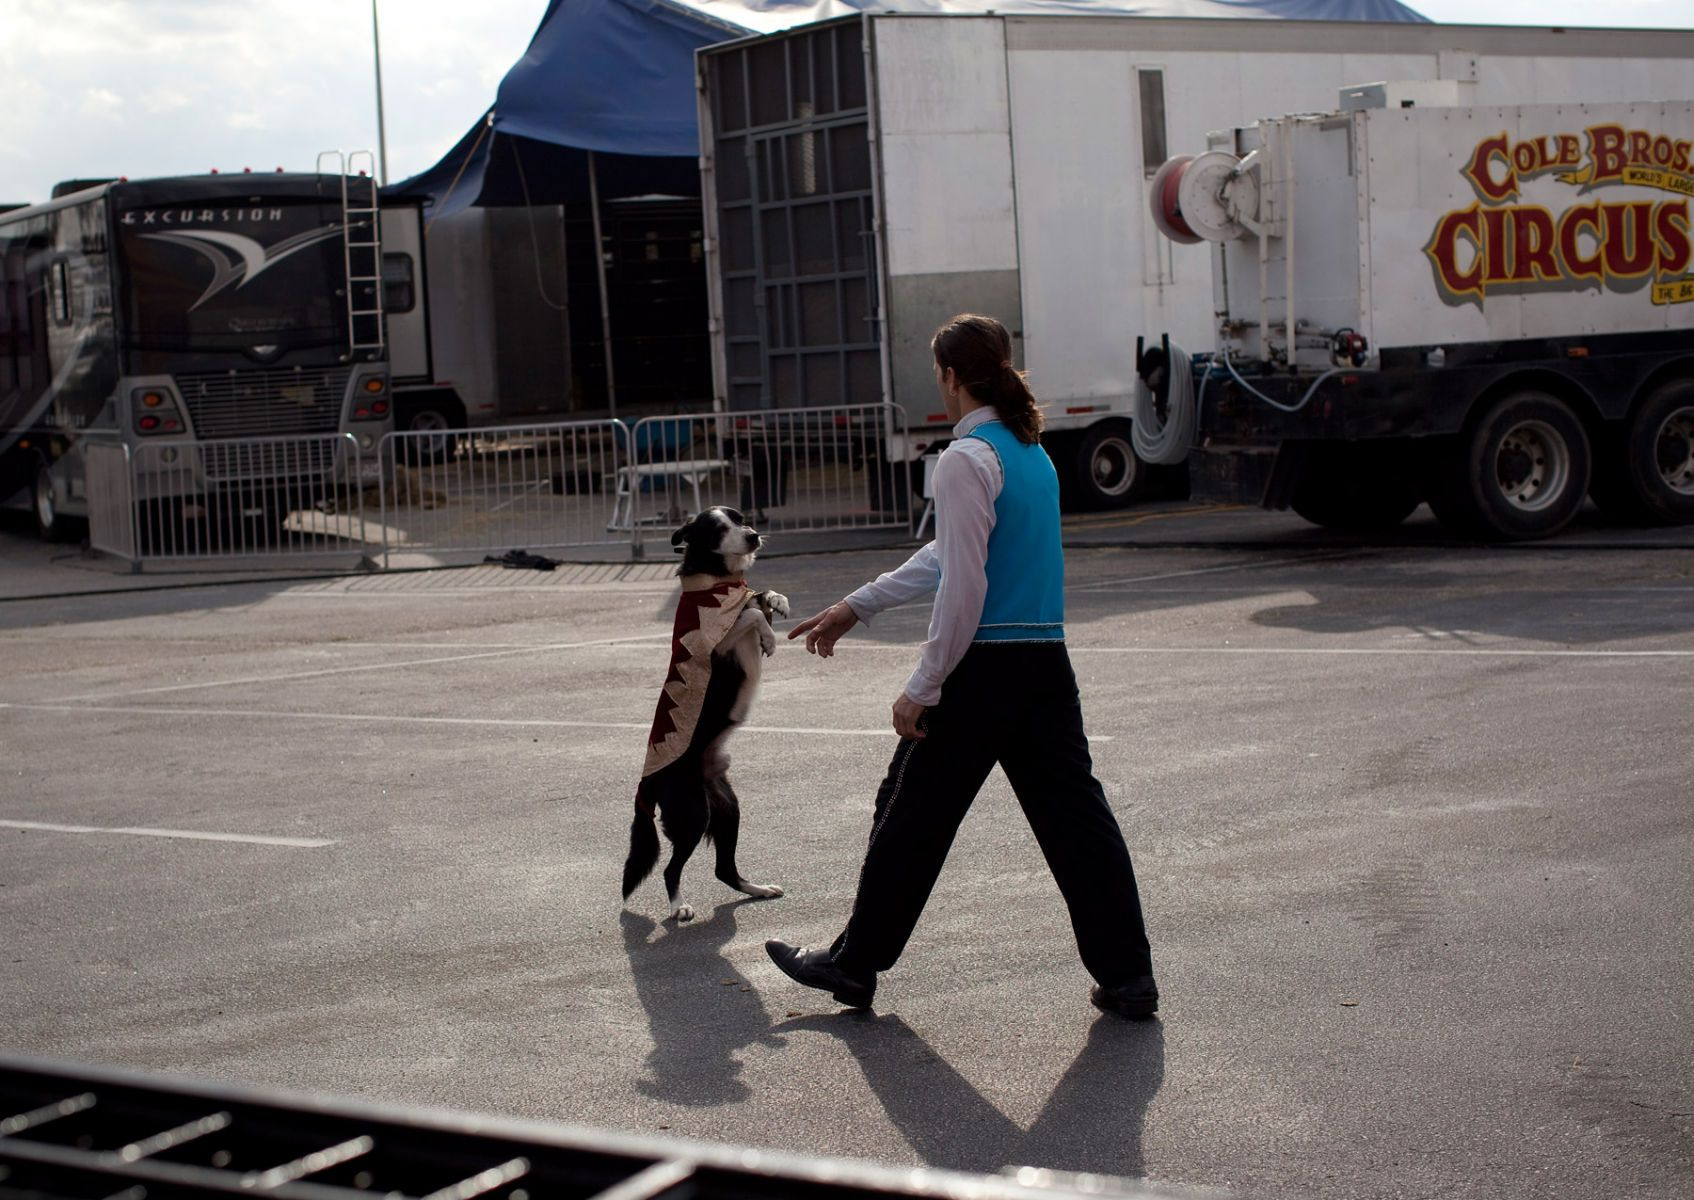 Cole Brothers Circus of the Stars performer German Fassio works with a dog backstage before the start of the first show in Myrtle Beach, South Carolina March 31, 2013. Traveling circuses such as the Cole Brothers Circus of the Stars, complete with it's traveling big top tent, set up their tent city in smaller markets all along the East Coast of the United States as they aim to bring the circus to rural areas. The Cole Brothers Circus, now in its 129th edition, travels to 100 cities in 20-25 states and stages 250 shows a year.   REUTERS/Randall Hill   (UNITED STATES)